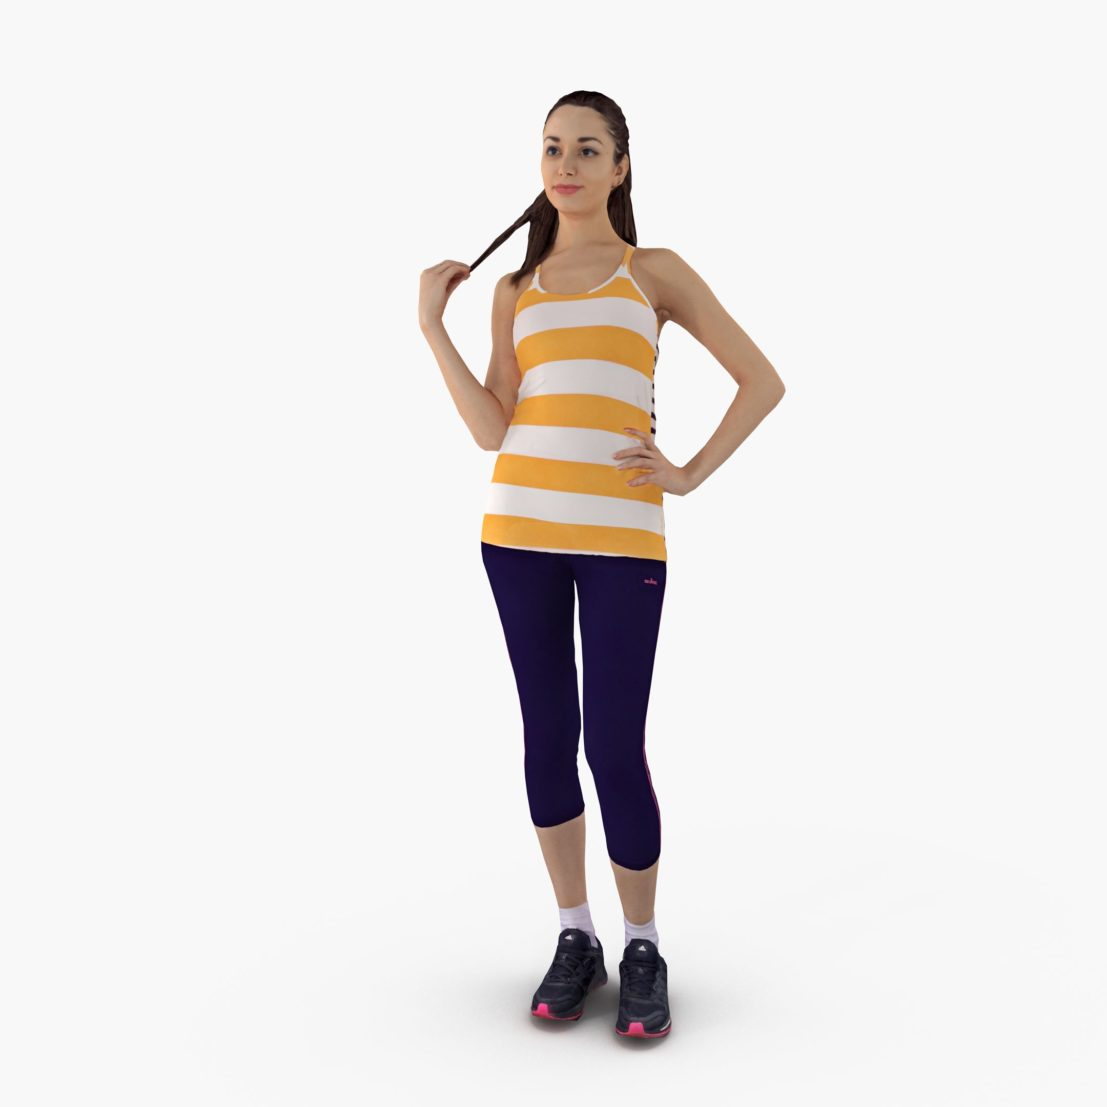 Sports Lady Standing 3D Model | 3DTree Scanning Studio